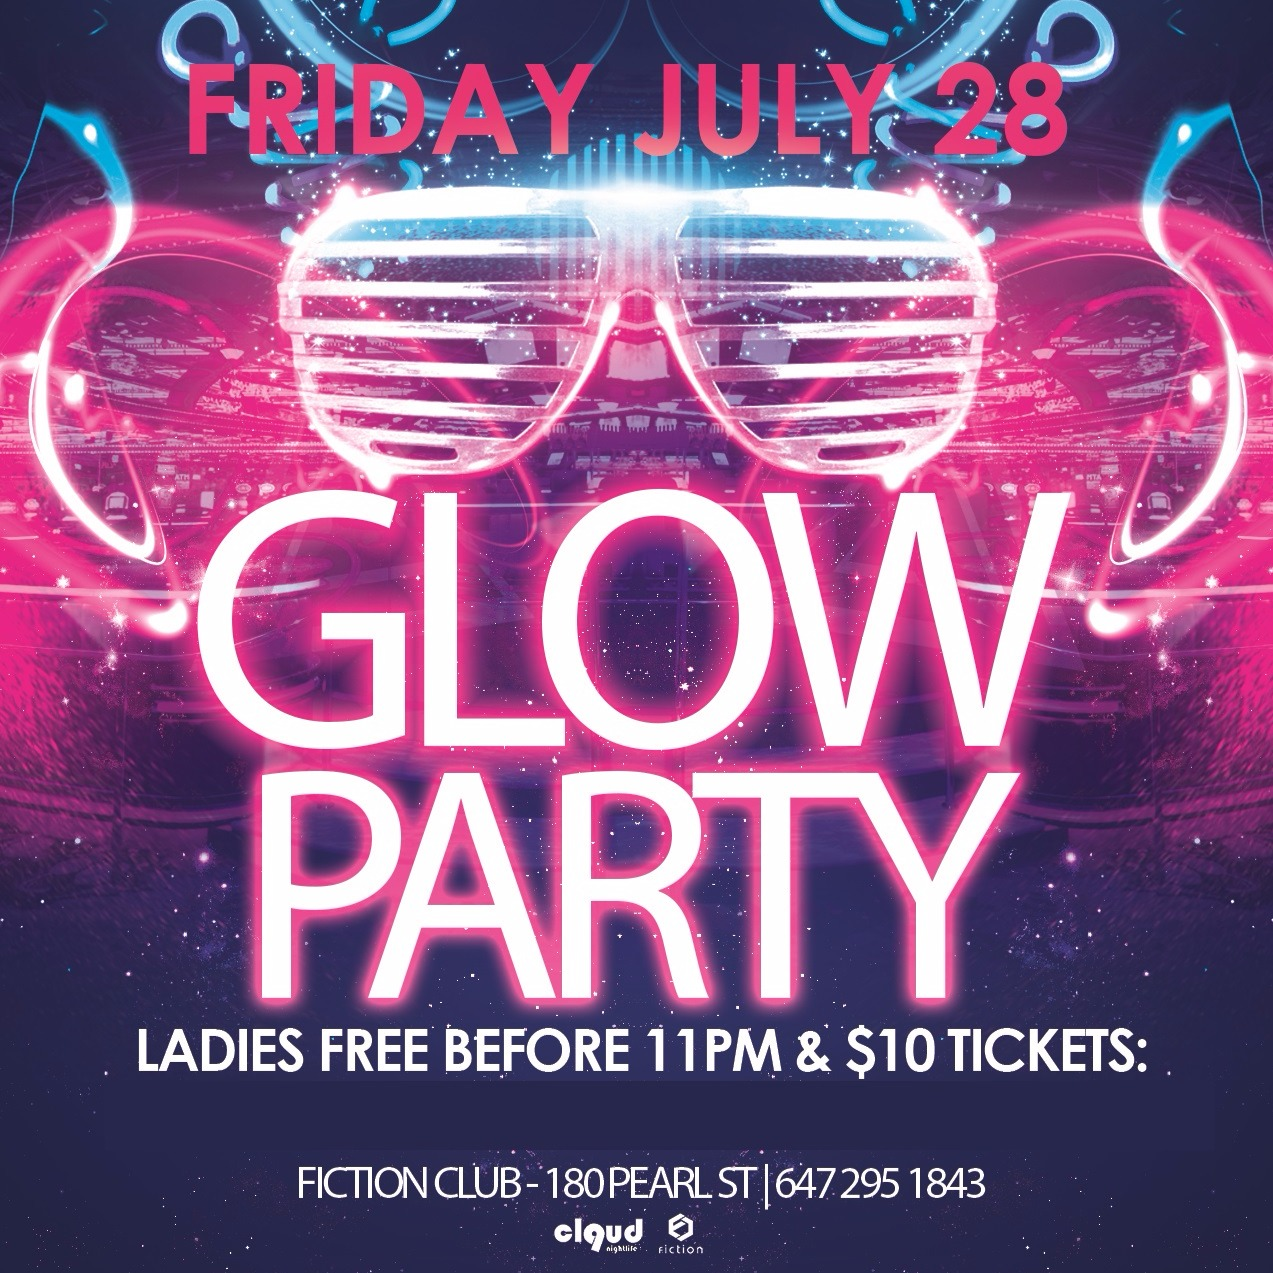 Glow Party @ Fiction // Fri July 28 | LADIES FREE B4 11PM & $4 Drinks